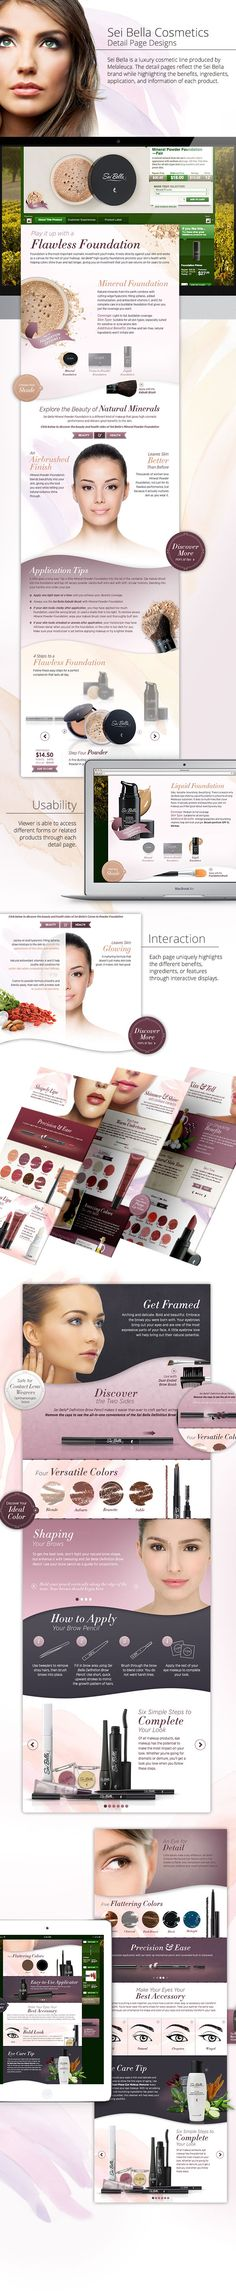 Sei Bella Cosmetic Detail Pages on Behance